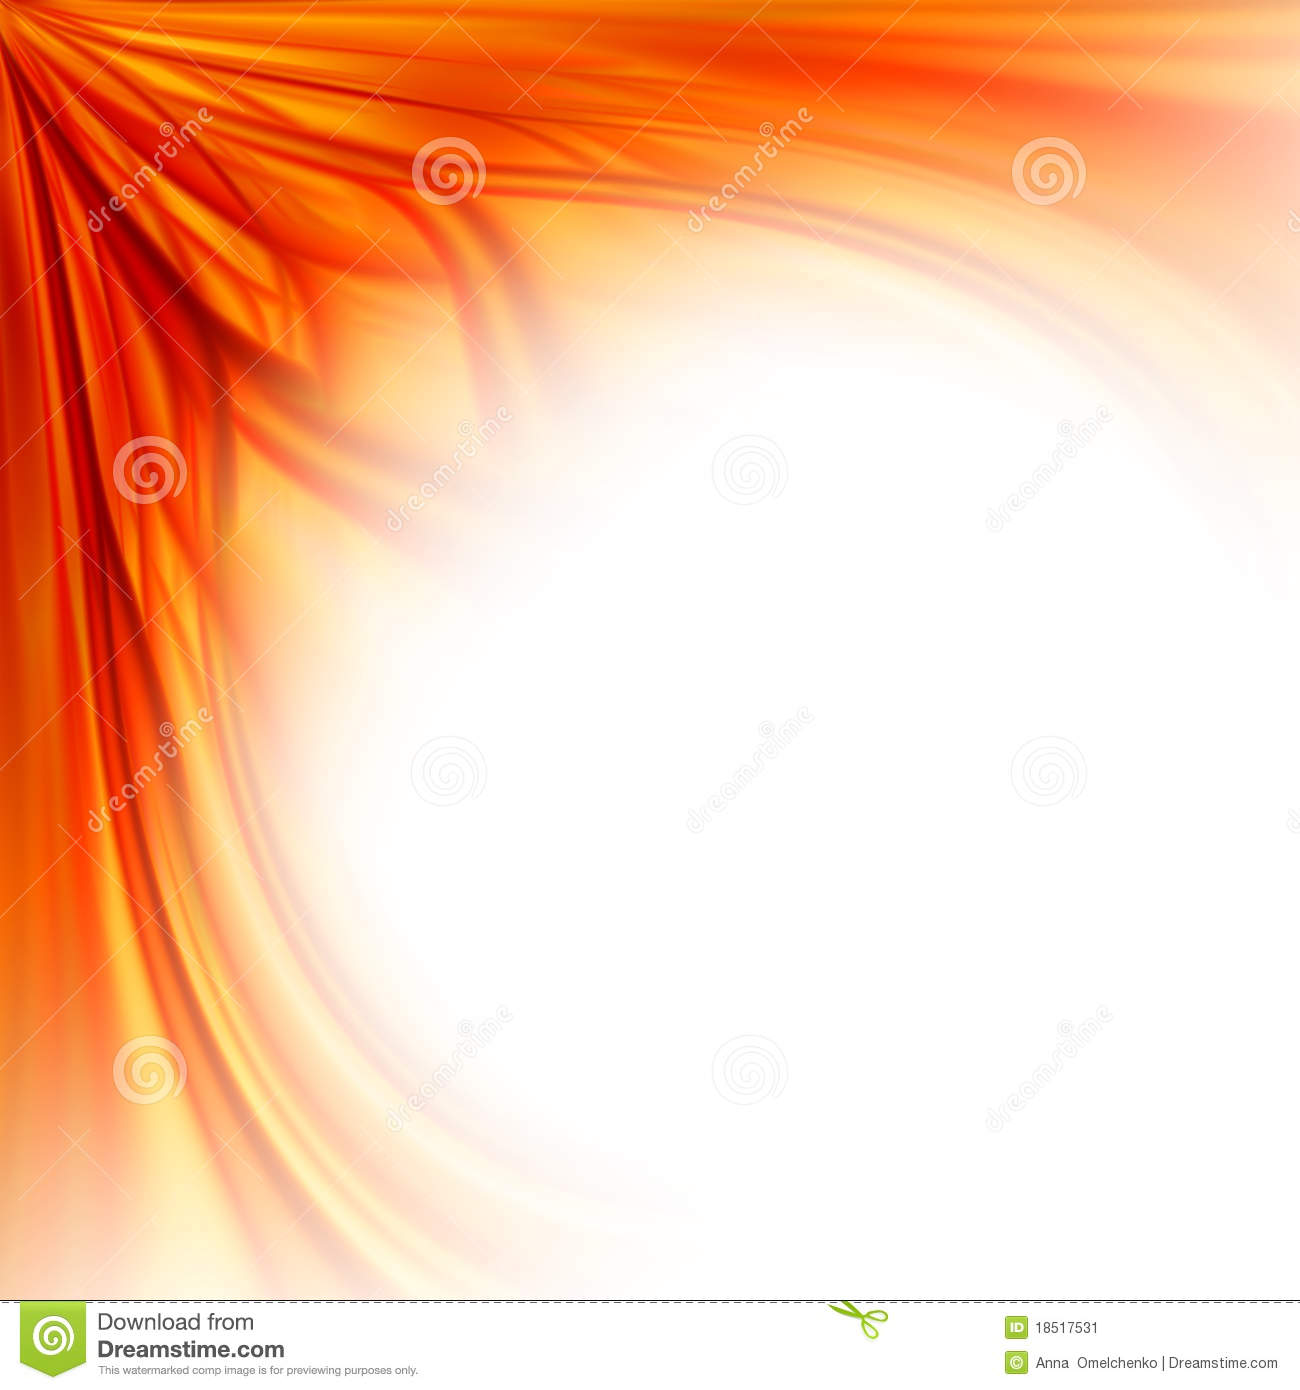 fire floral border background stock image image 18517531 spring season background clipart spring season clipart pictures